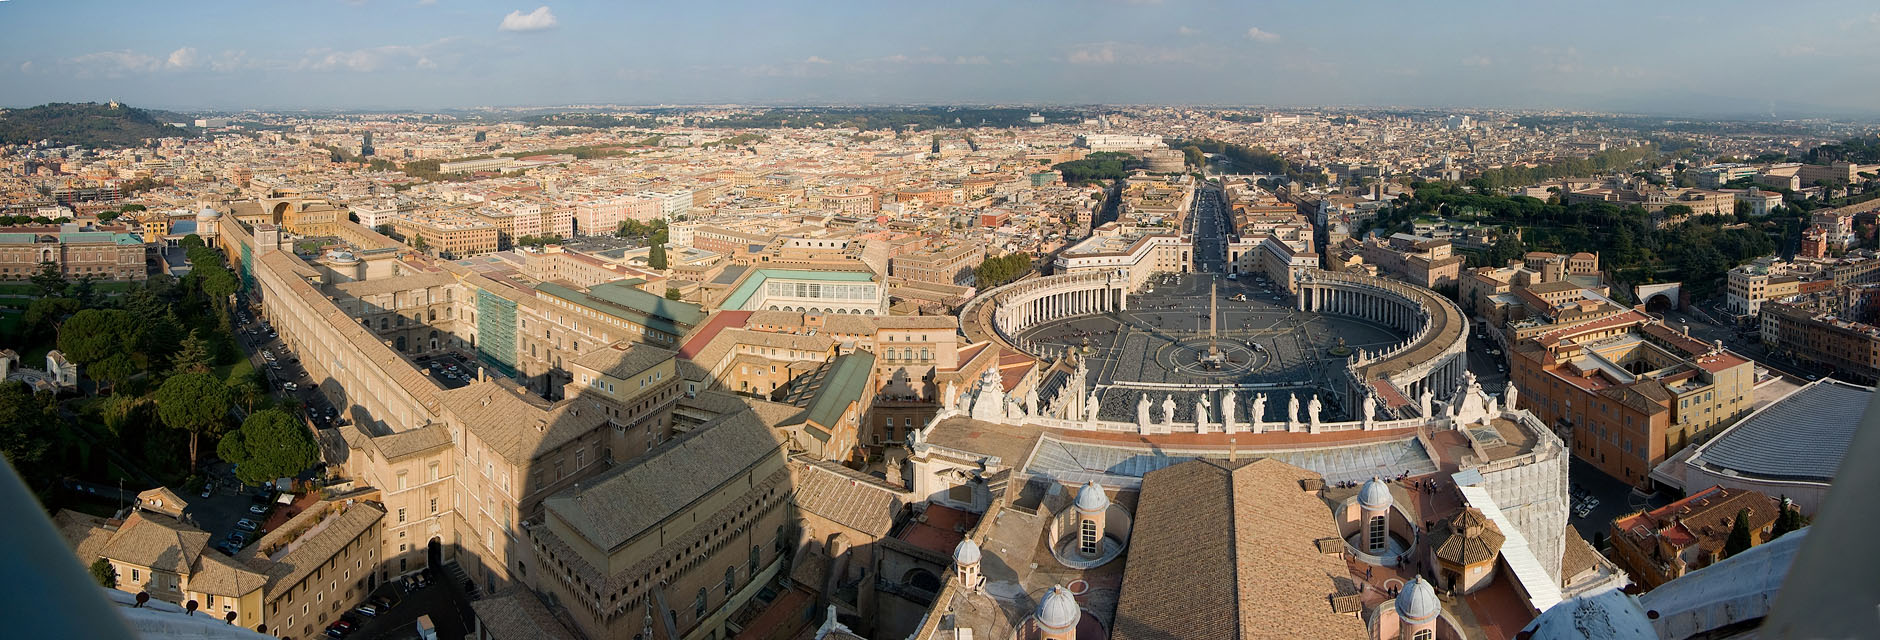 Part of Vatican City and Rome seen from St. Peters Basilica